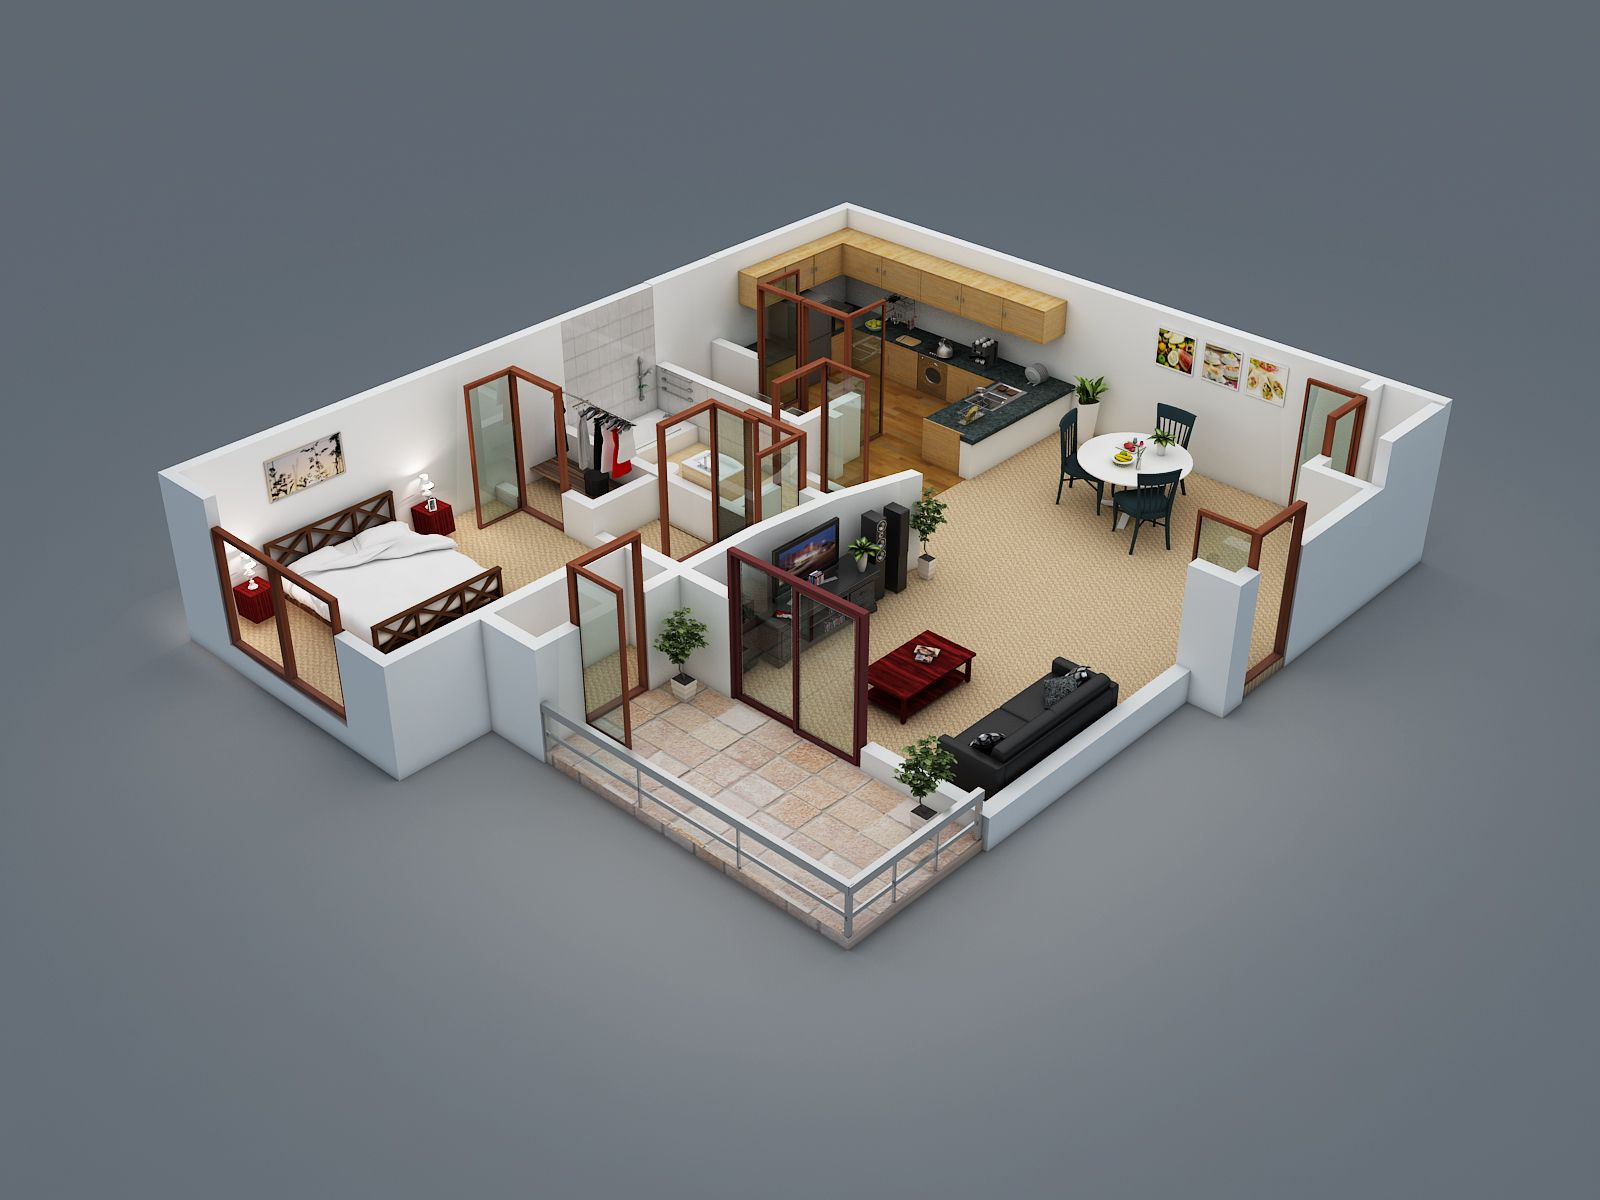 17 Best images about Architecture 3d Floor Plan on Pinterest